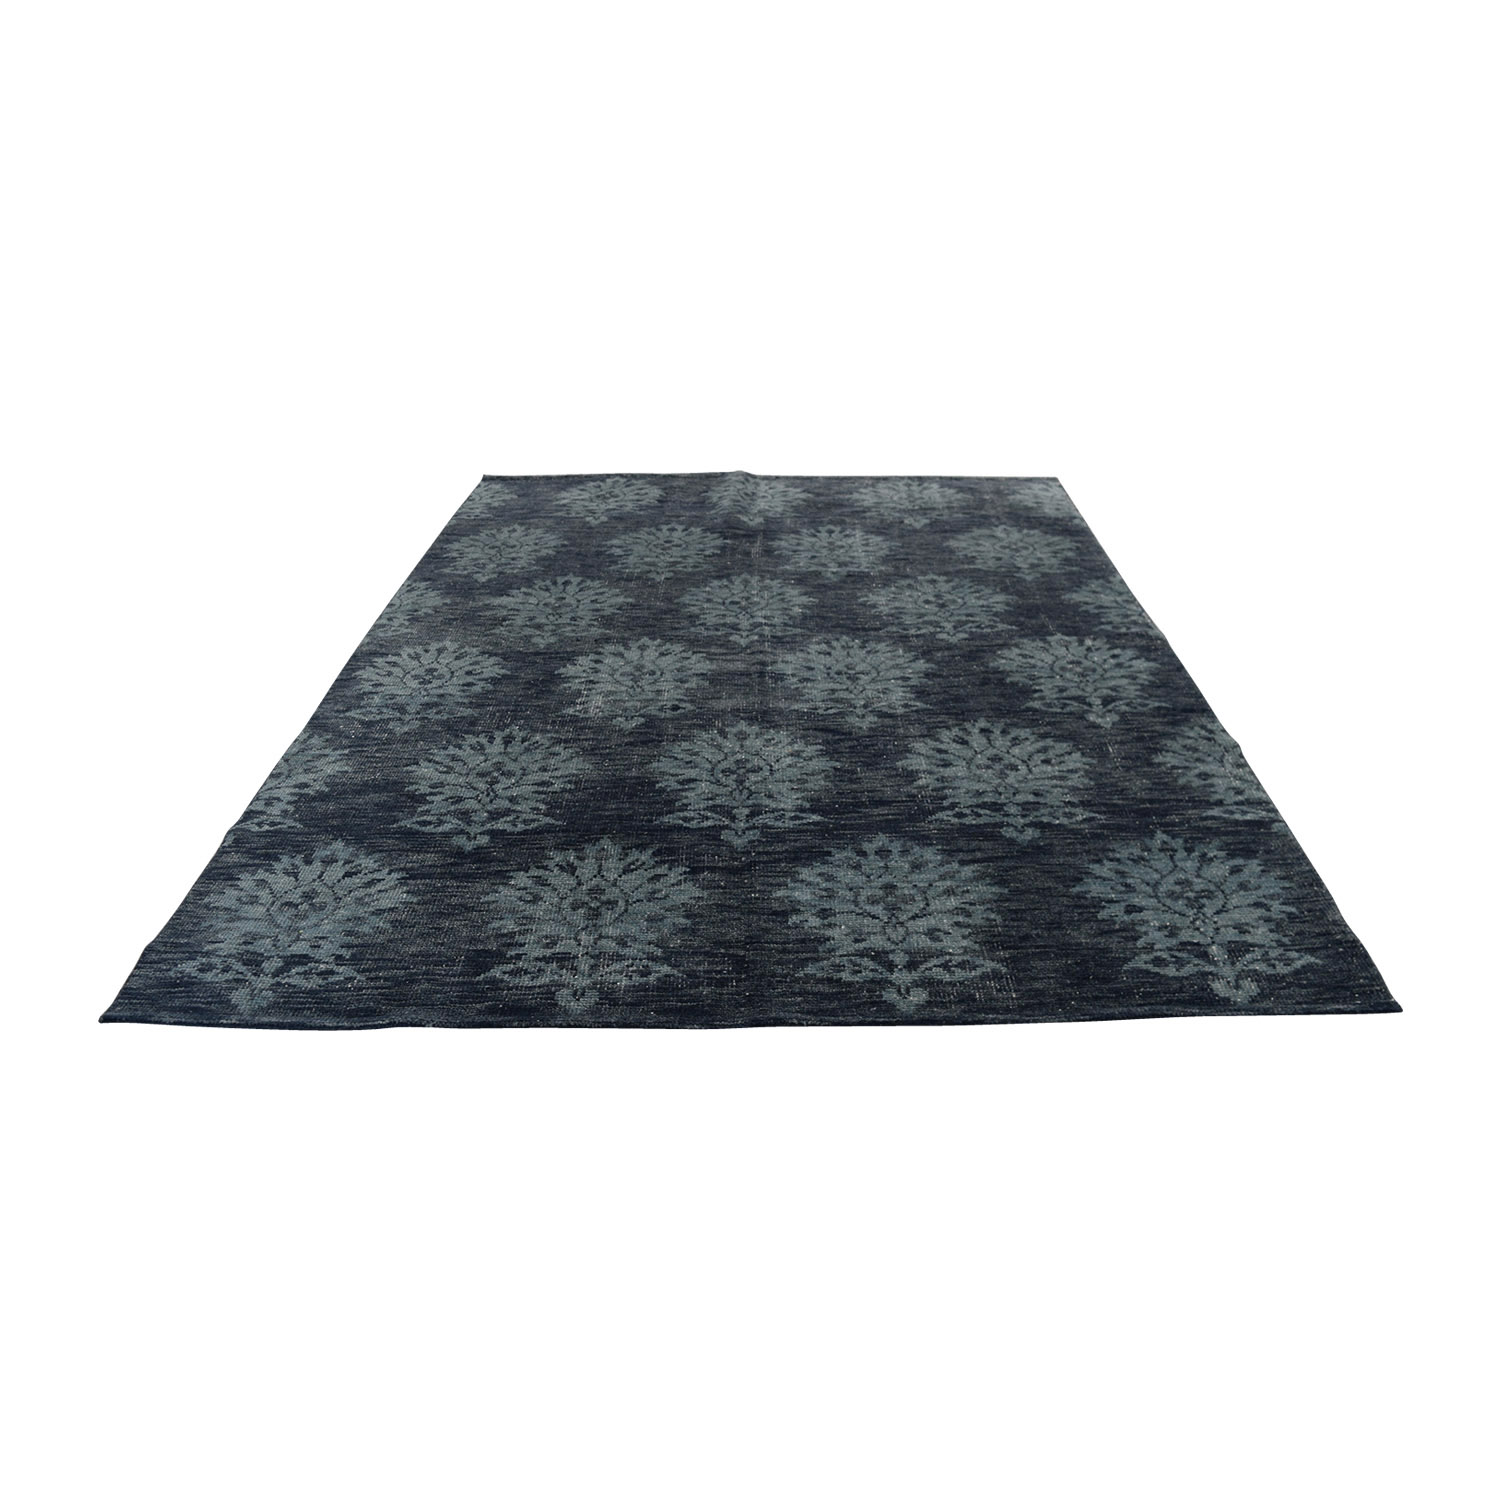 Obeetee Obeetee Hand Knotted Amira Azul Blue Wool Rug on sale